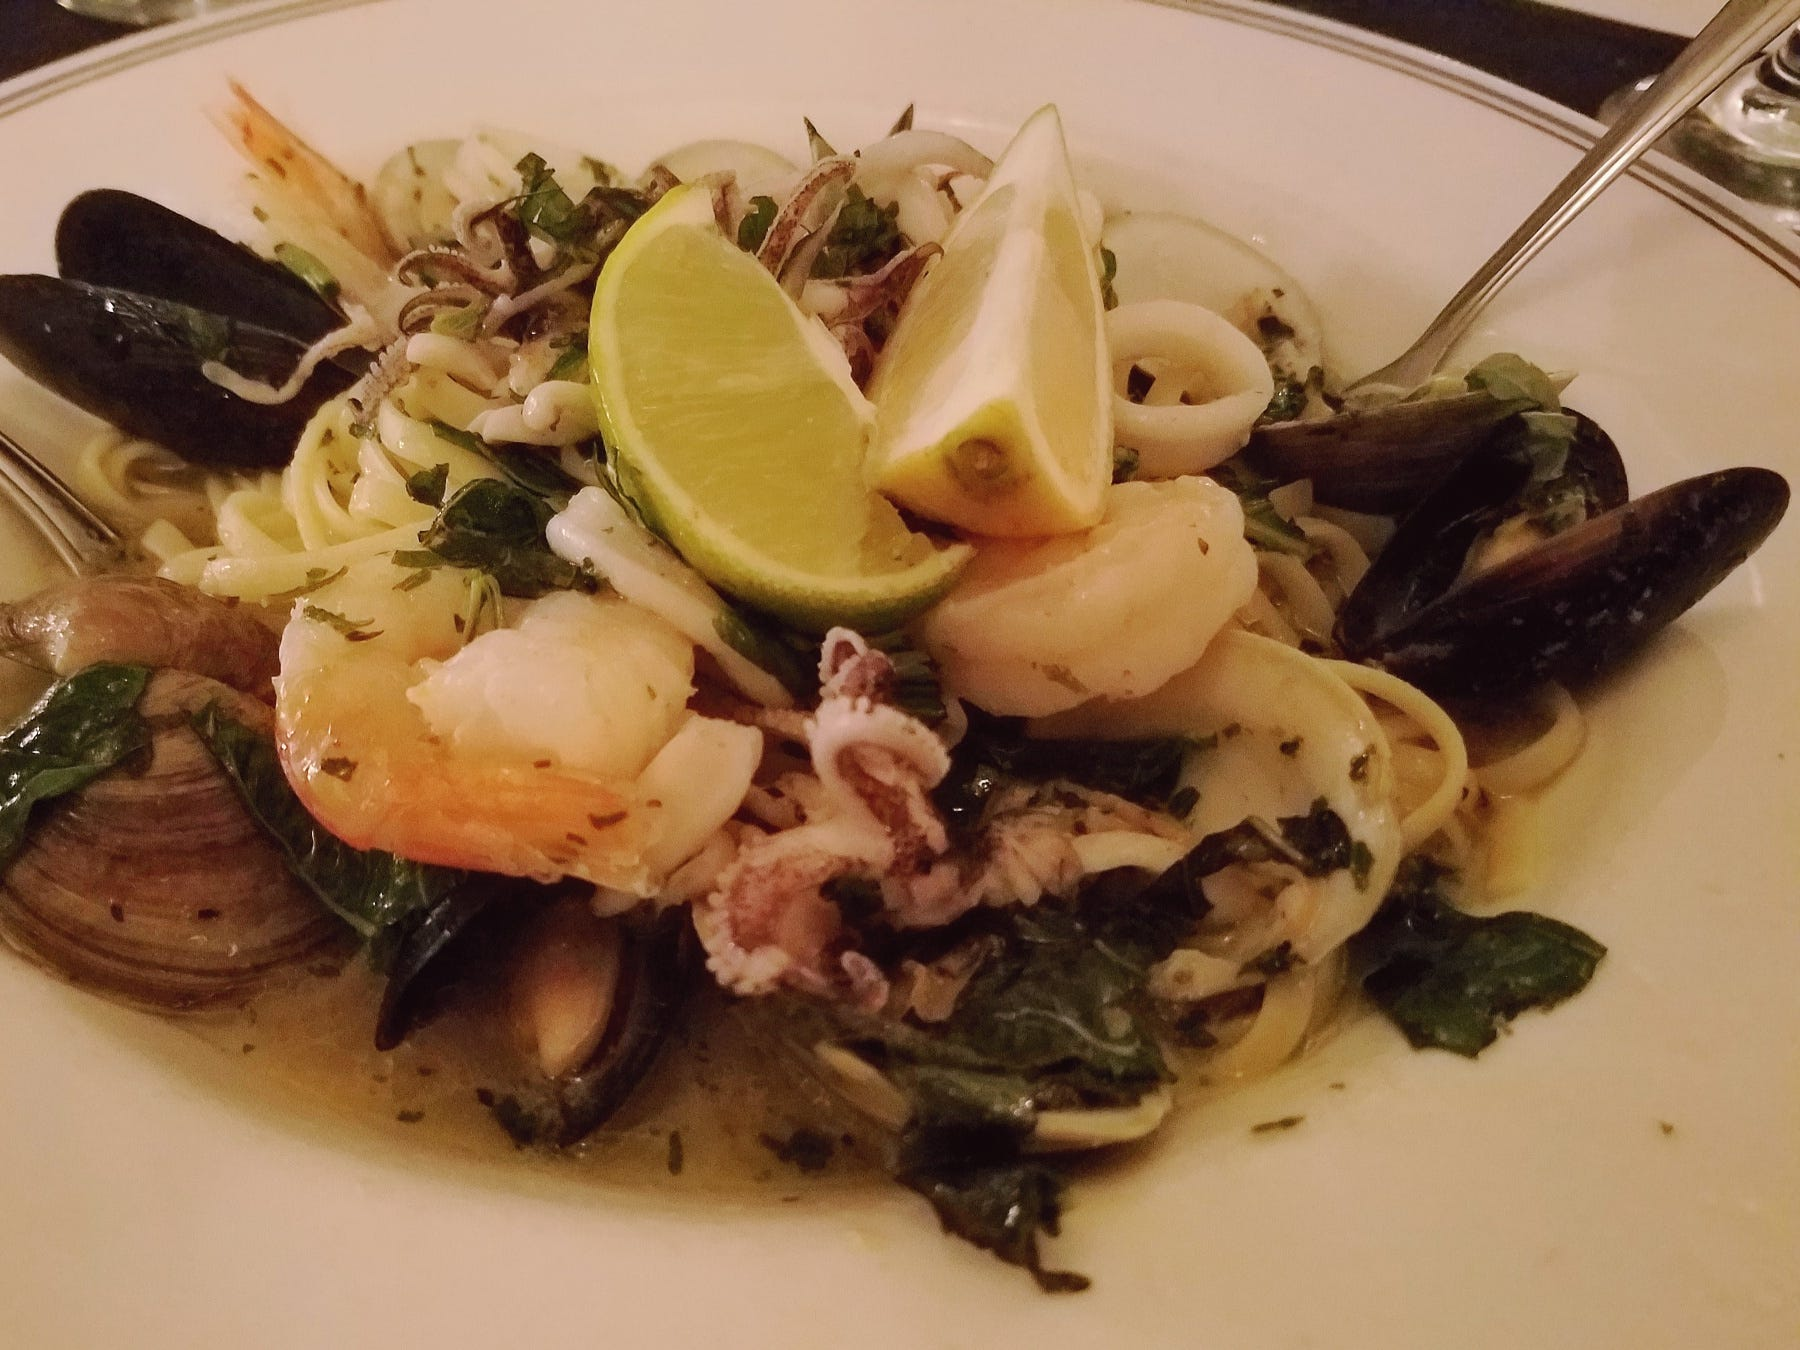 The seafood DiMare at 18 Seminole Street was full of clams, mussels, shrimp and calamari tossed in a white garlic basil sauce served over linguine.